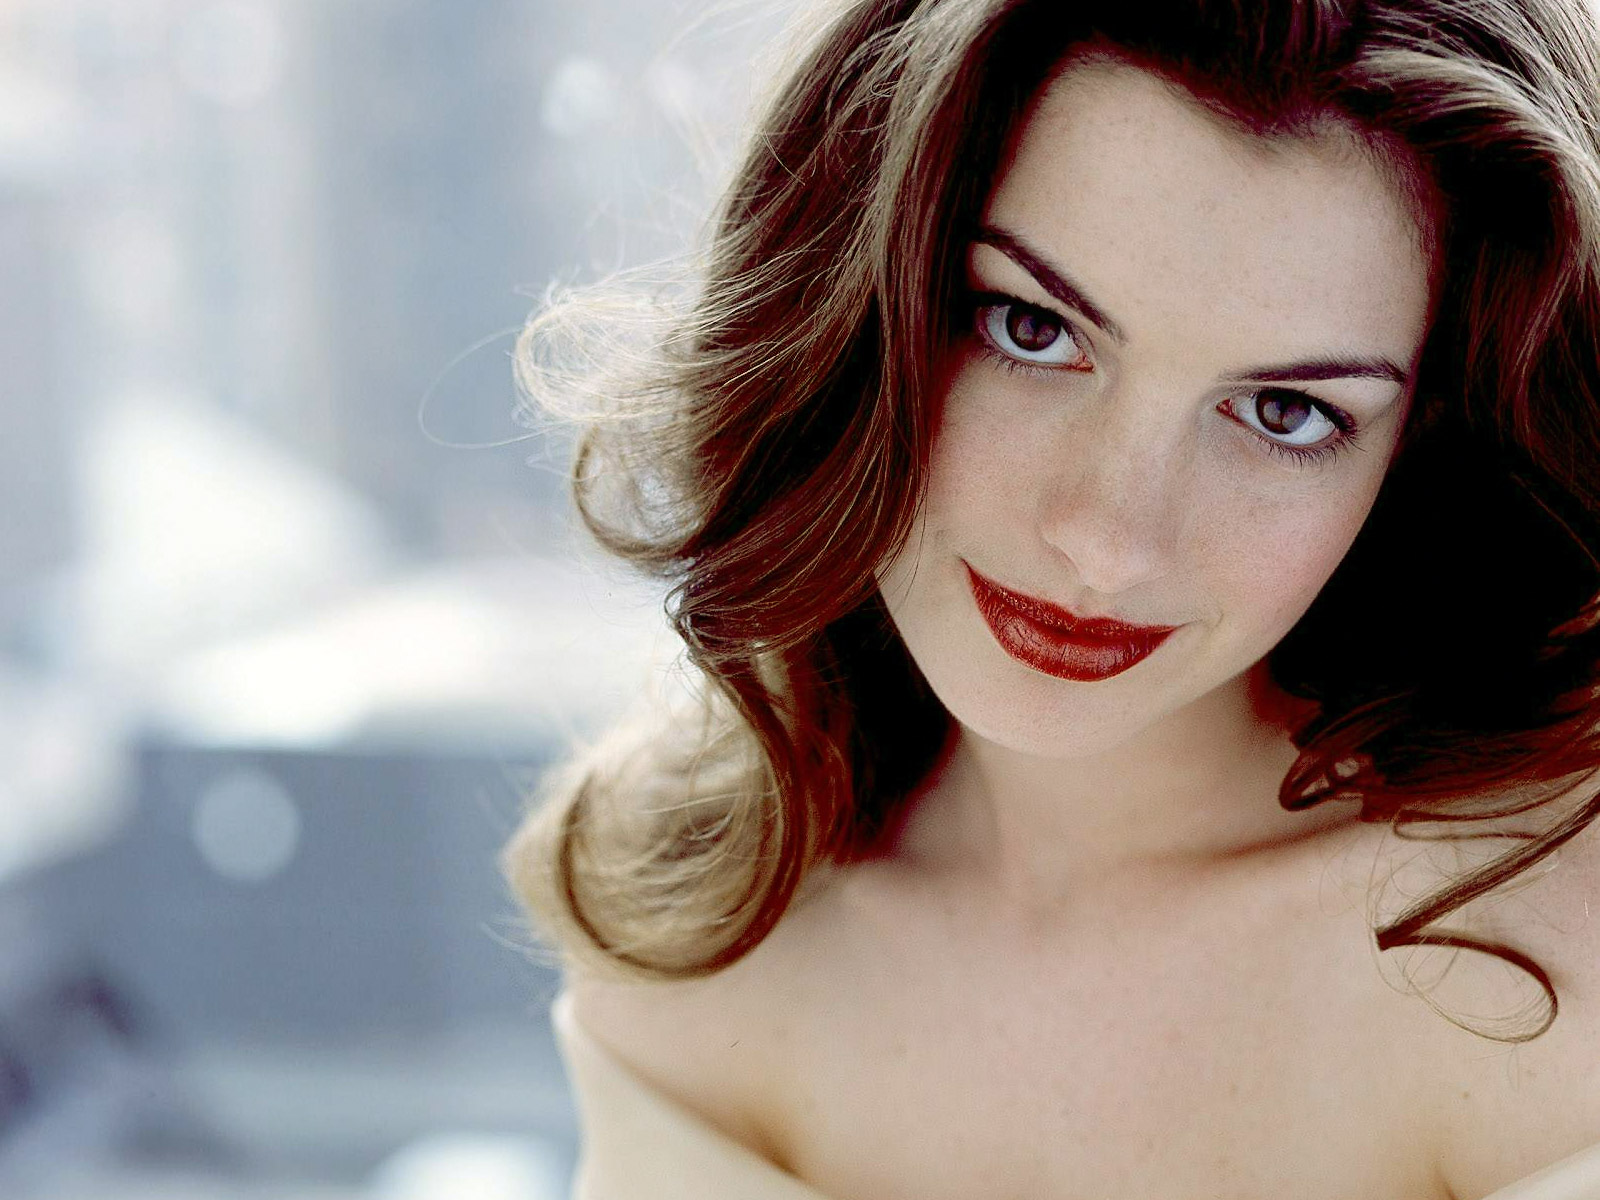 Pretty Anne Hathaway Wallpaper